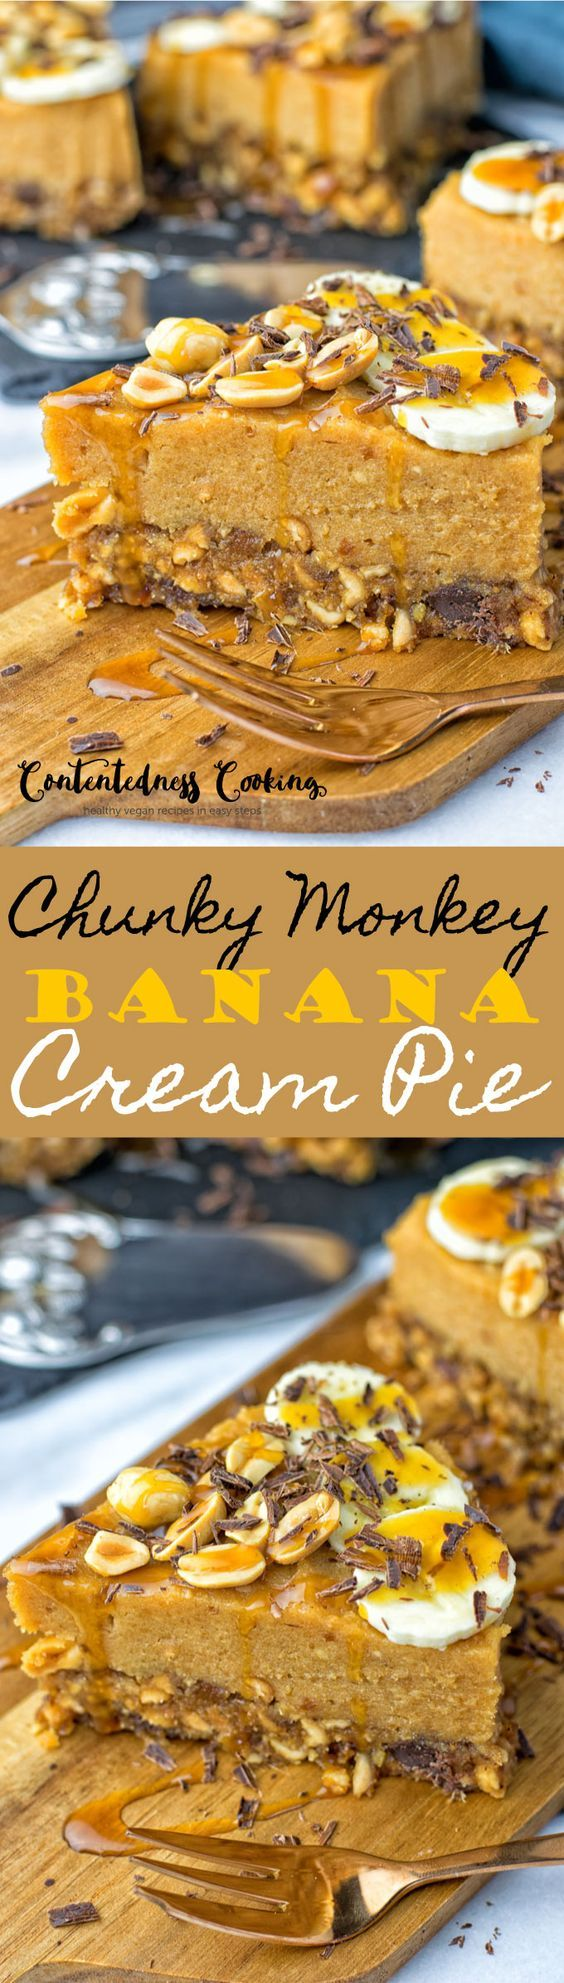 My #ChunkyMonkey #BananaCream #Pie is a #beautiful #vegan #dessert made from 6 ingredients. Full of flavor from #dates, #peanuts, #bananas, and #coconutnectar. #Glutenfree and #easy. #dessert #cake